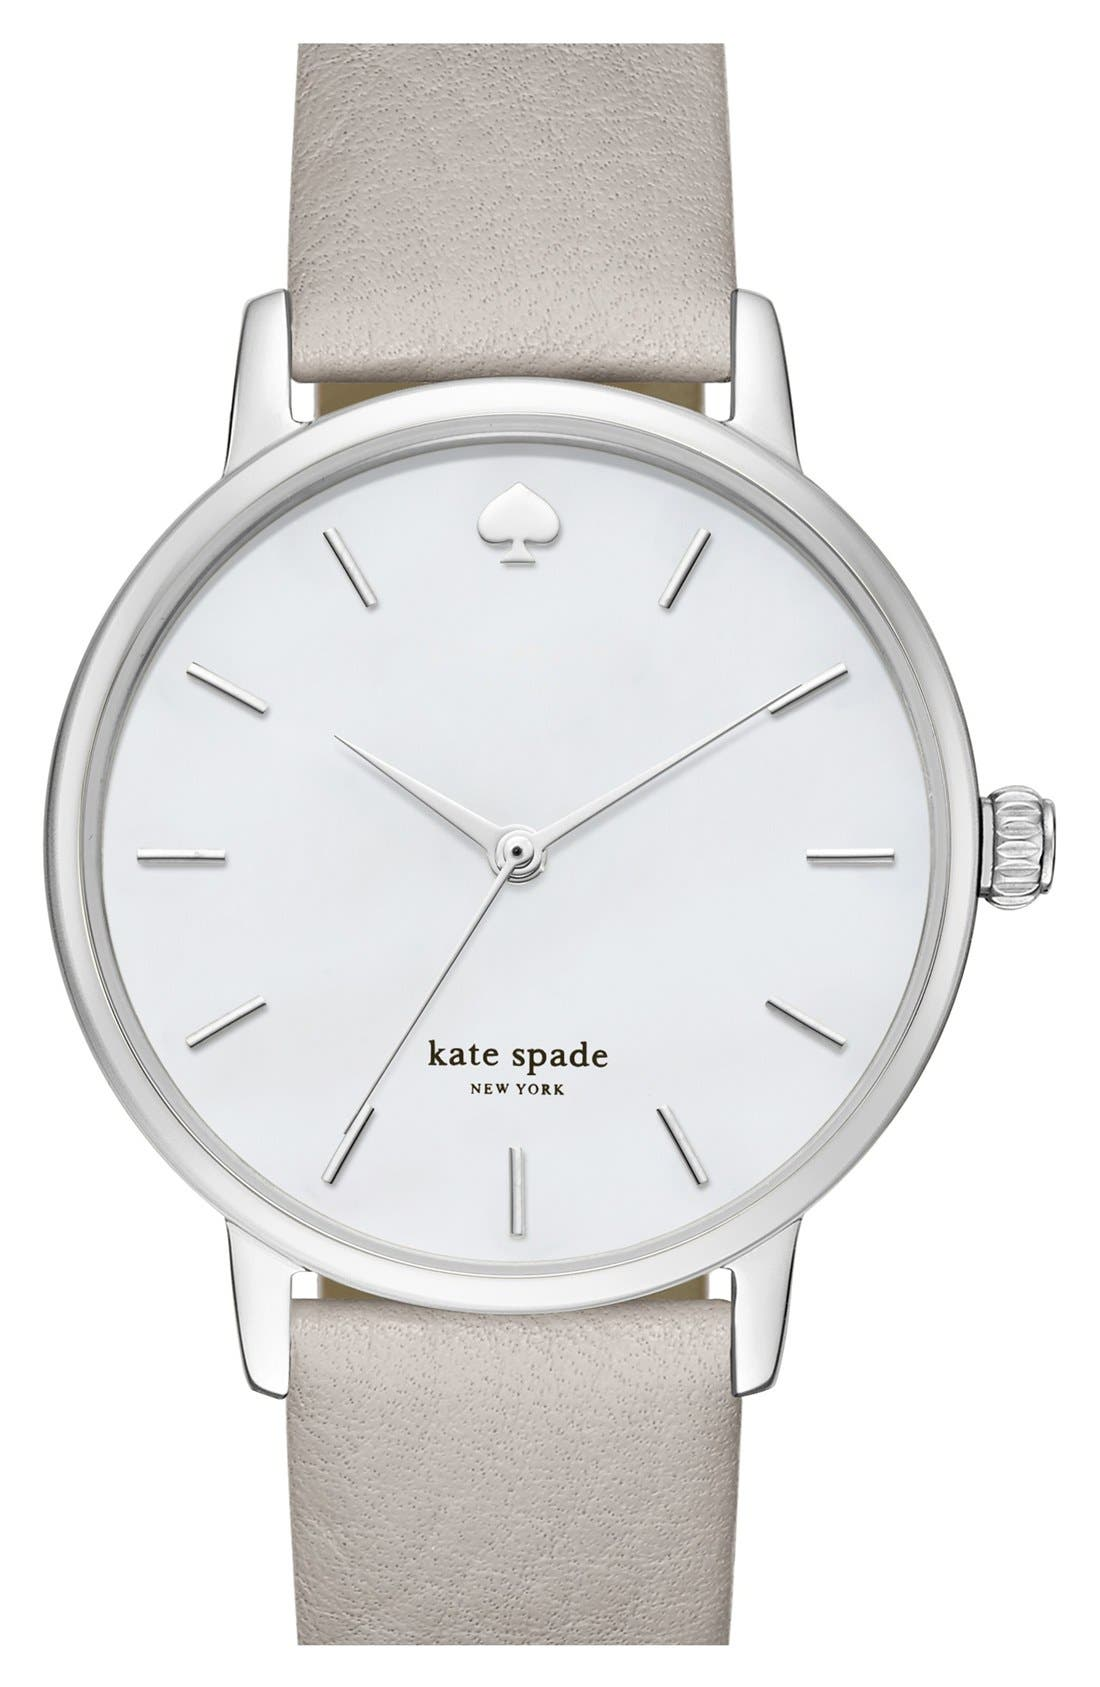 KATE SPADE NEW YORK 'metro' round leather strap